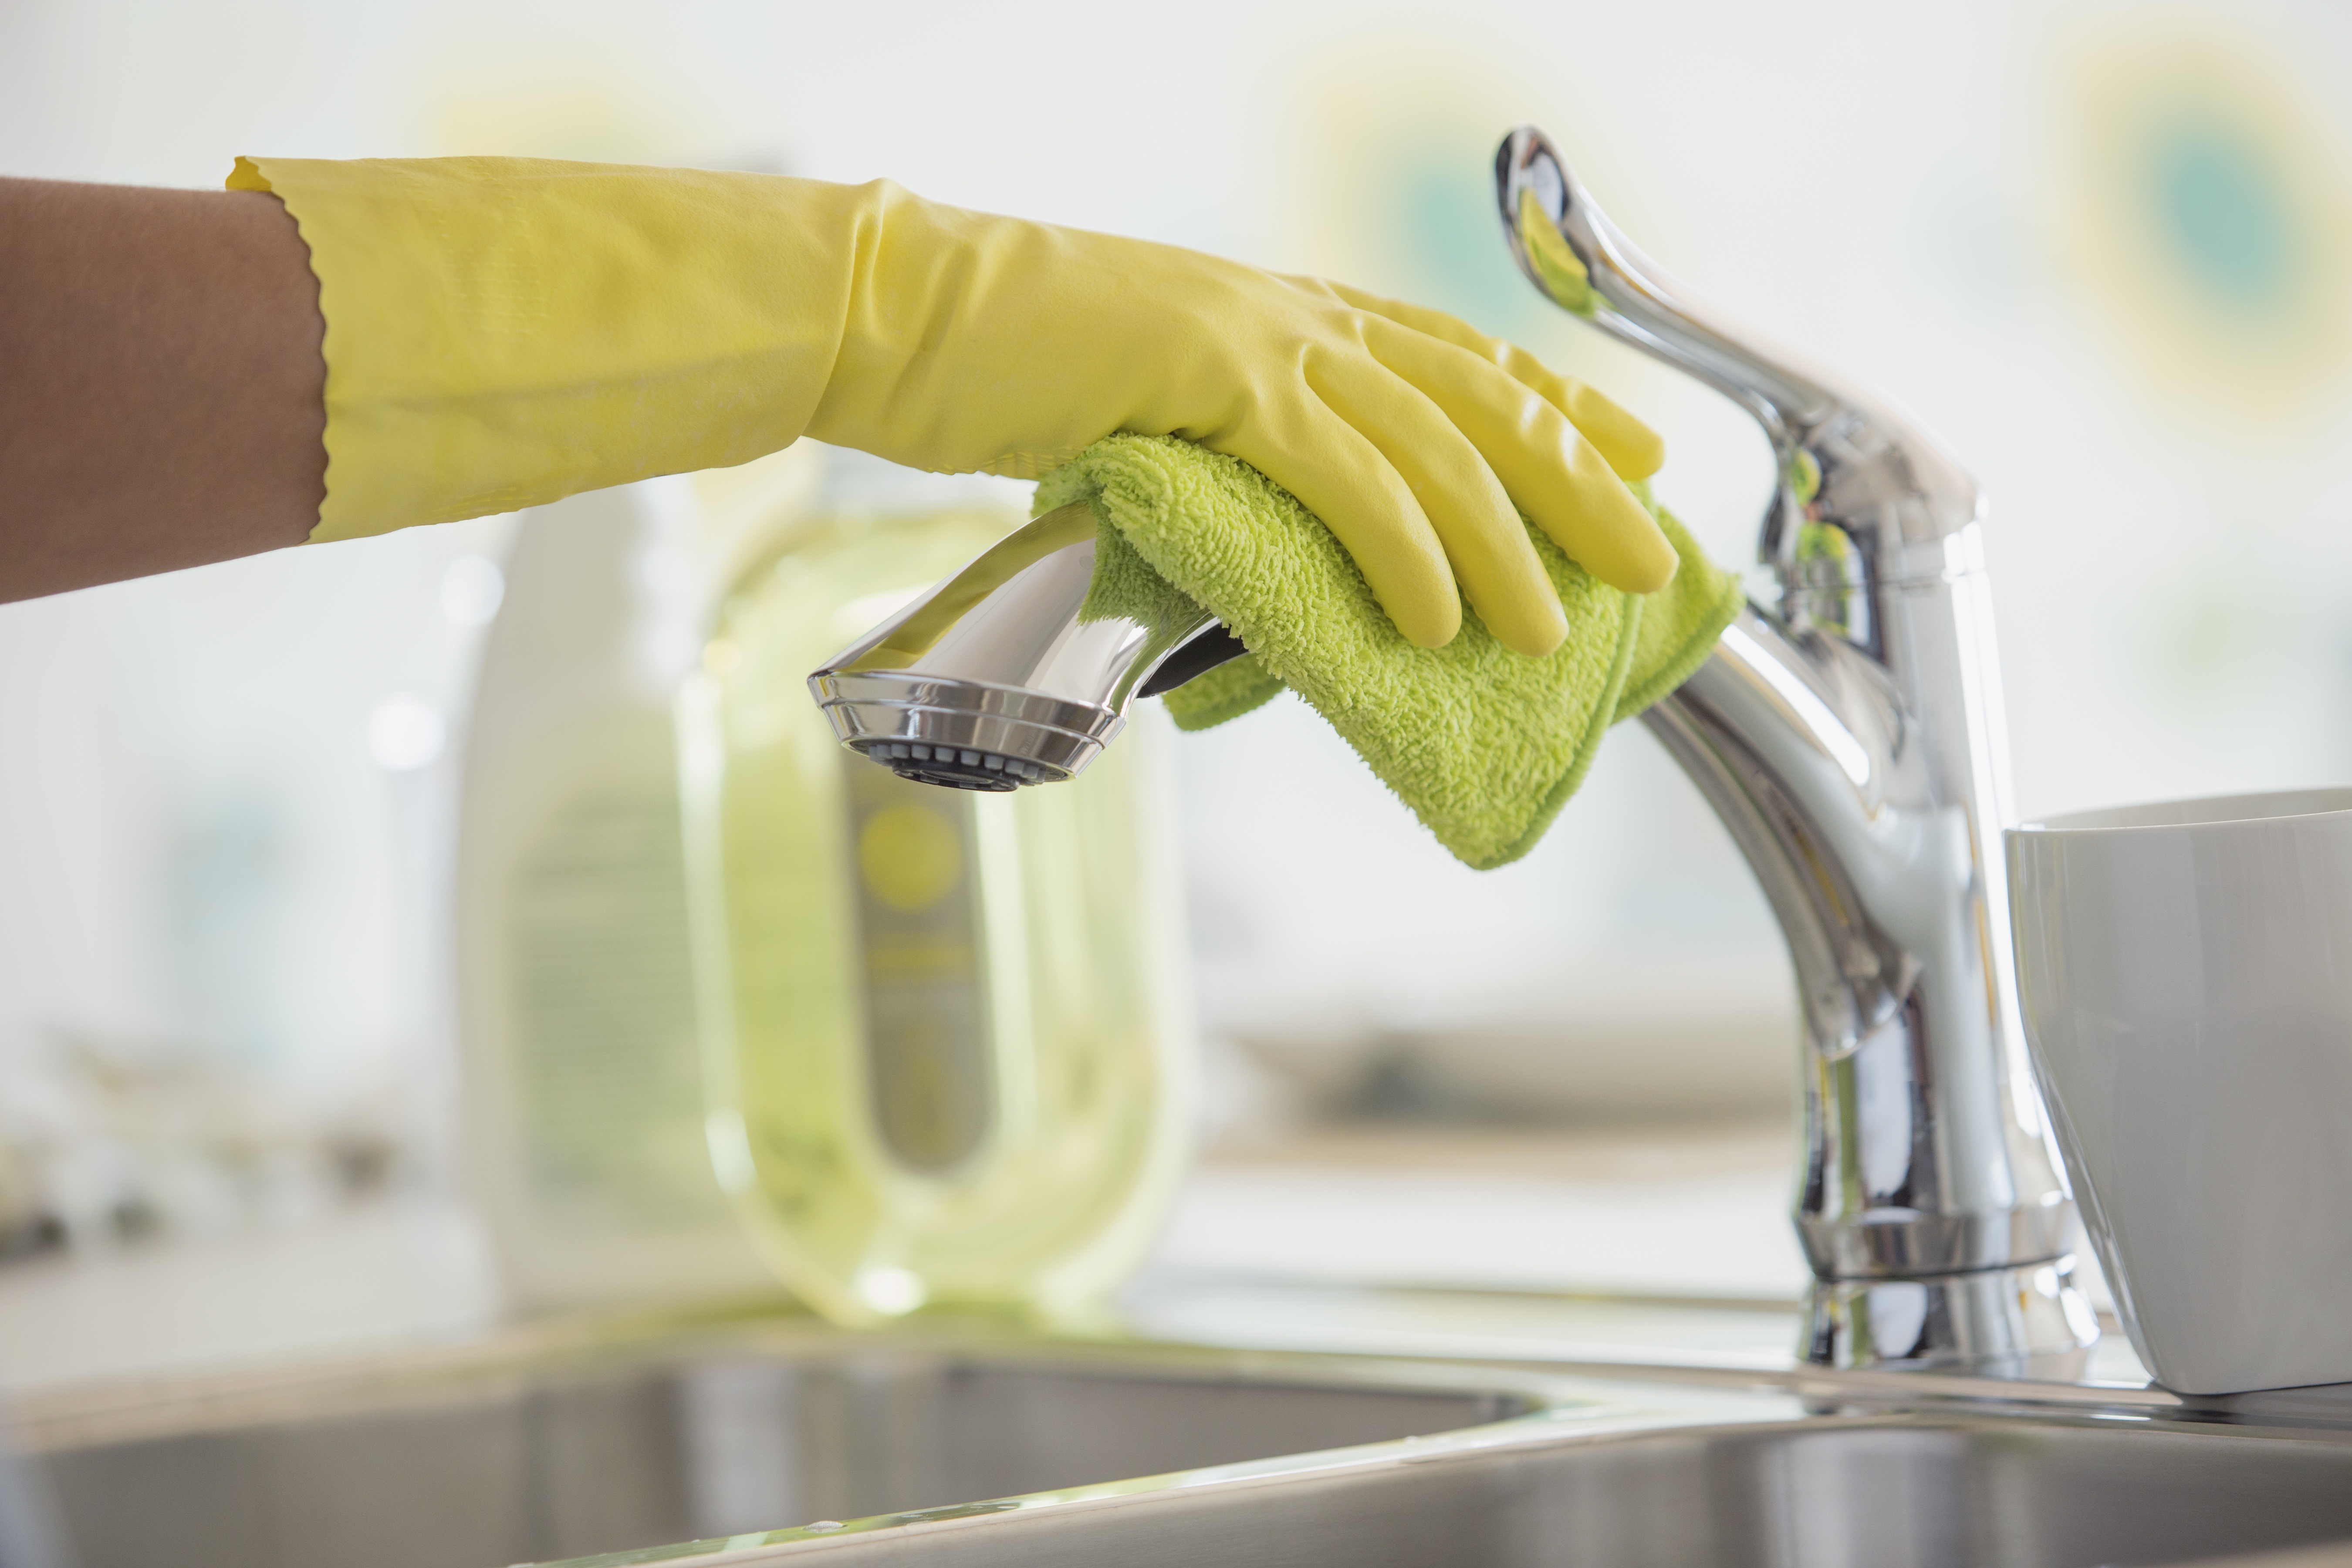 Woman cleaning kitchen faucet with gloves on.